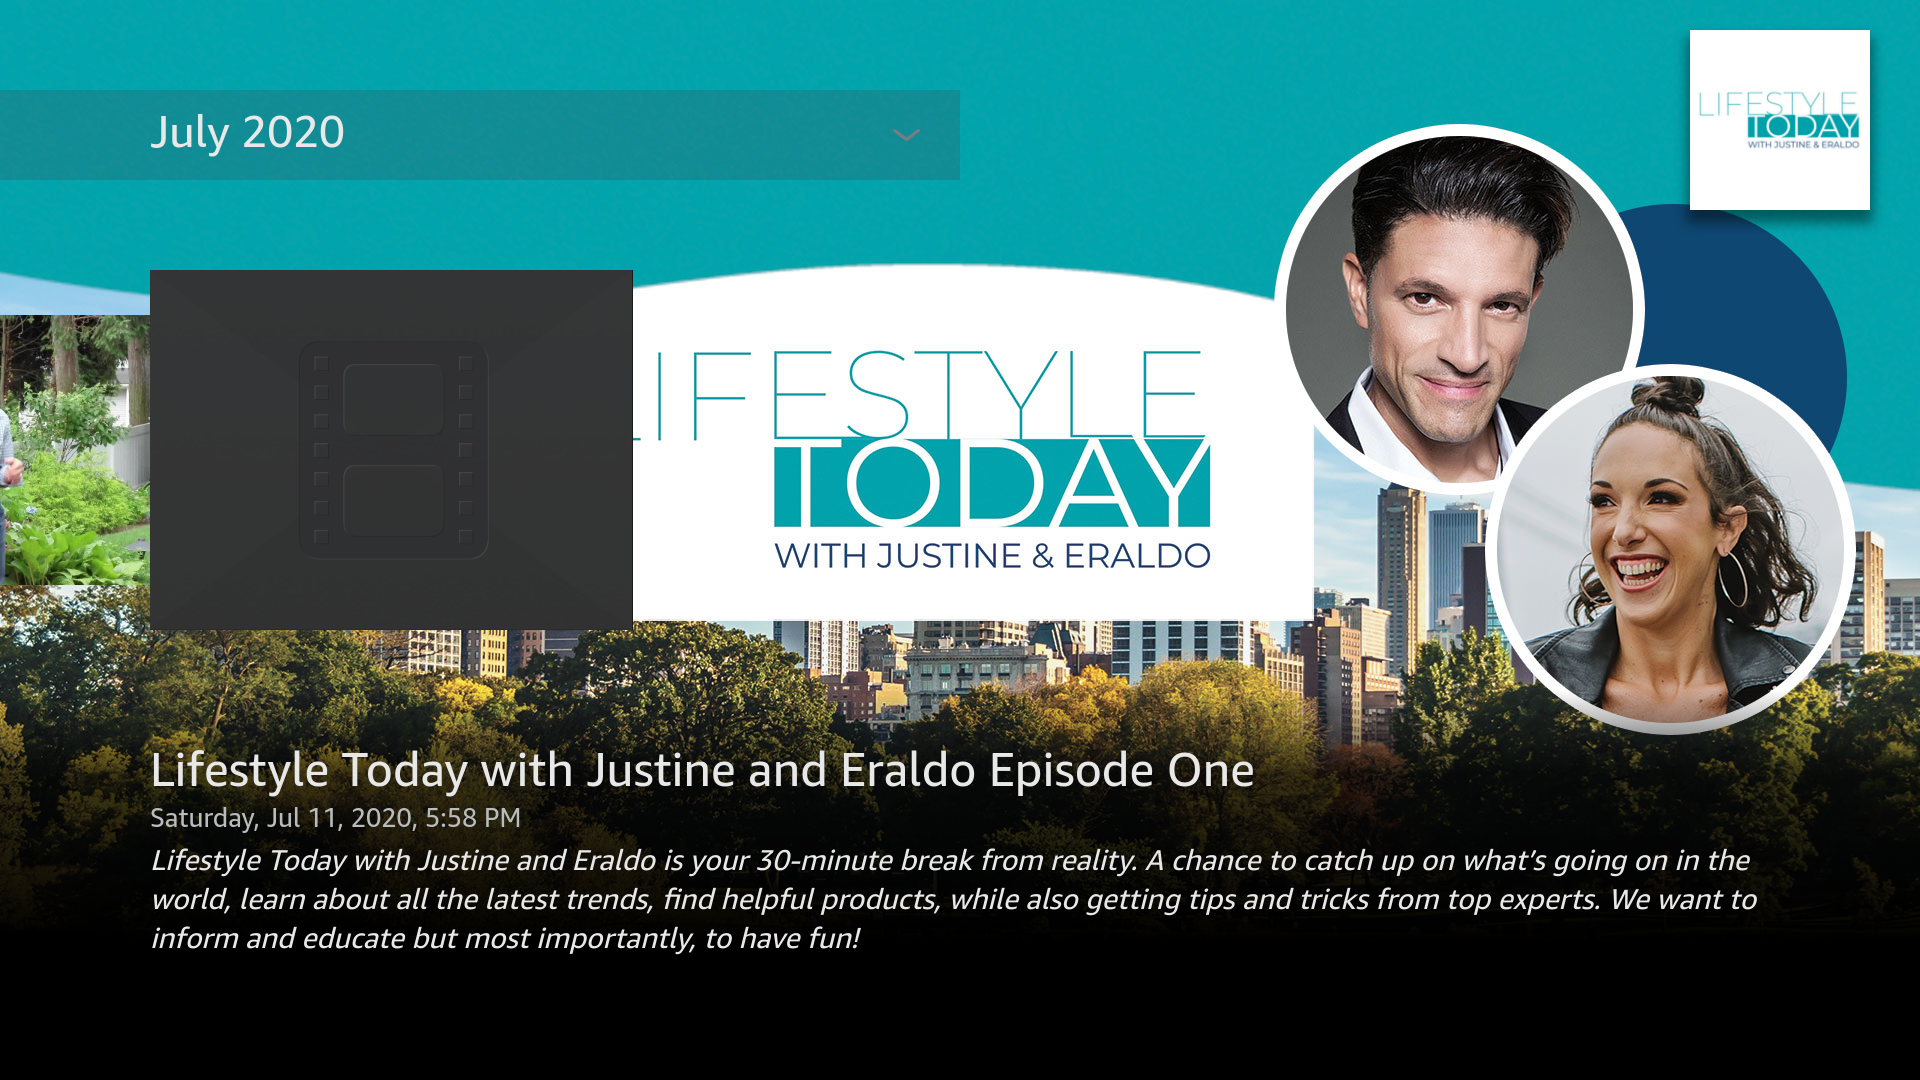 Amazon.com: LIFESTYLE TODAY WITH JUSTINE & ERALDO: Appstore for Android